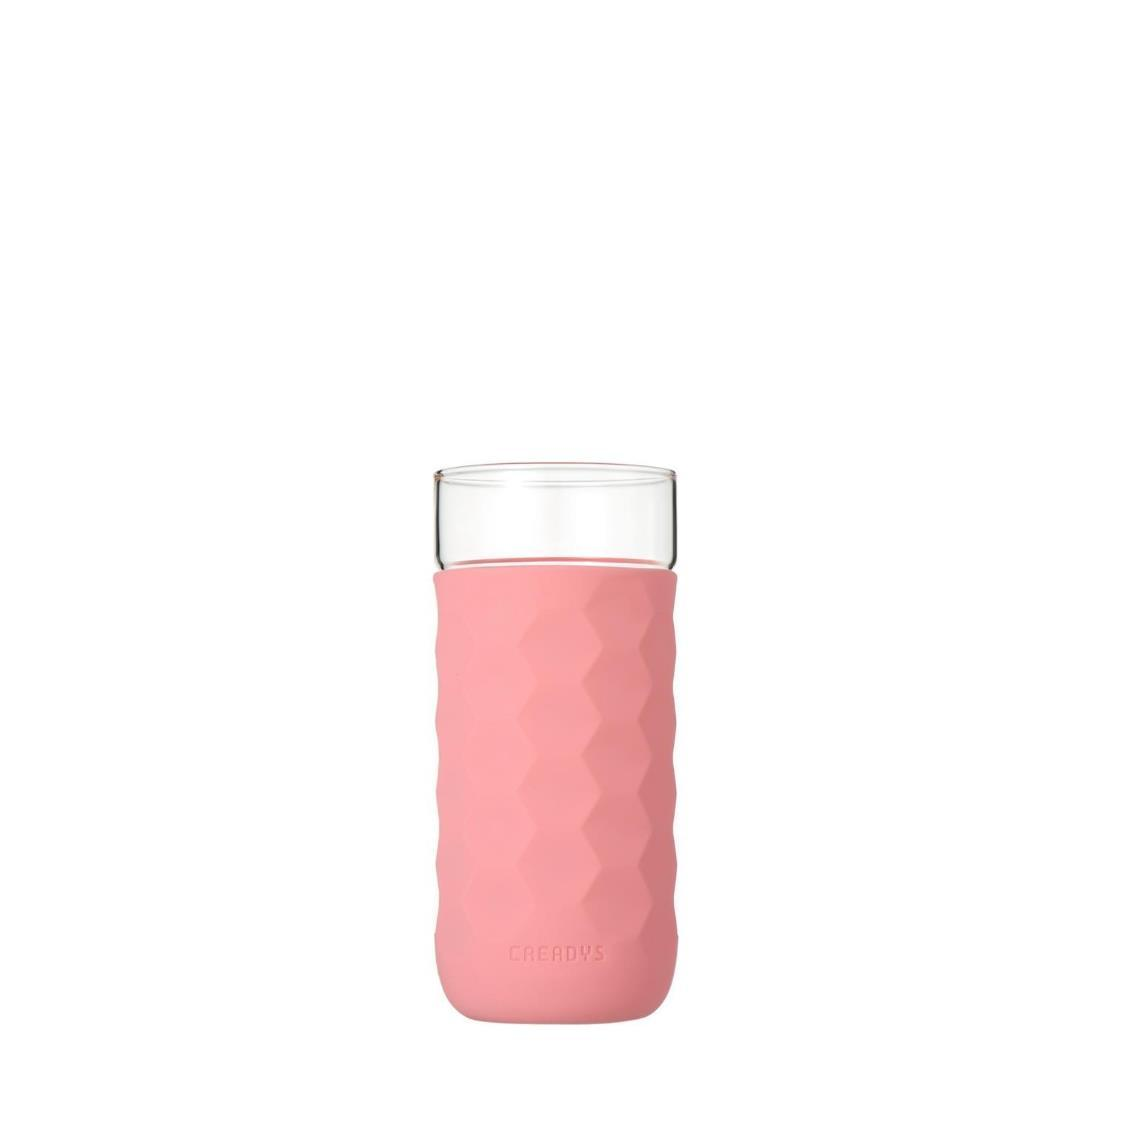 Honey Comb Tumbler Pink 380ml